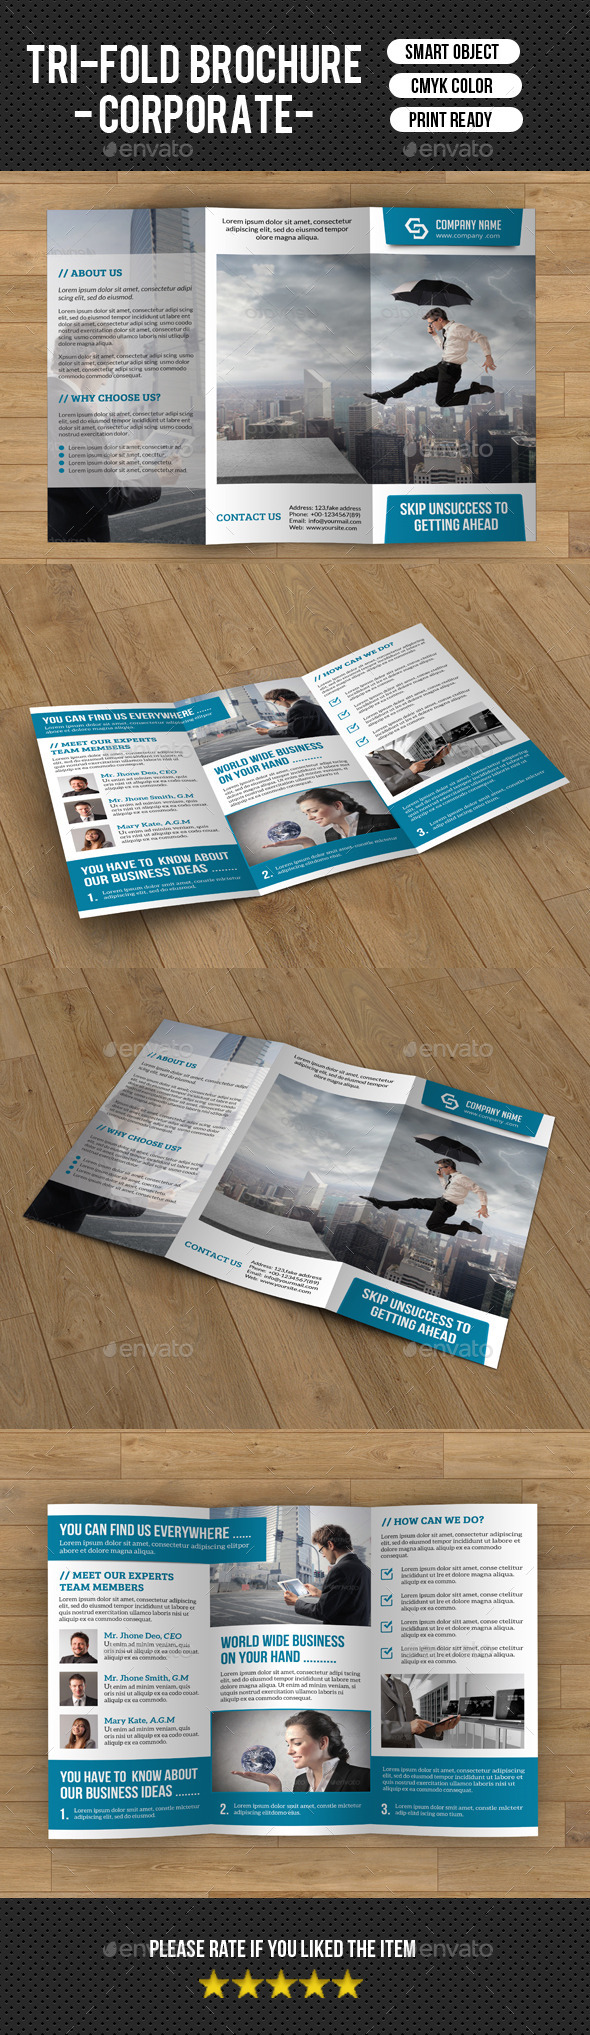 Trifold Corporate Brochure Template-v189 - Brochures Print Templates